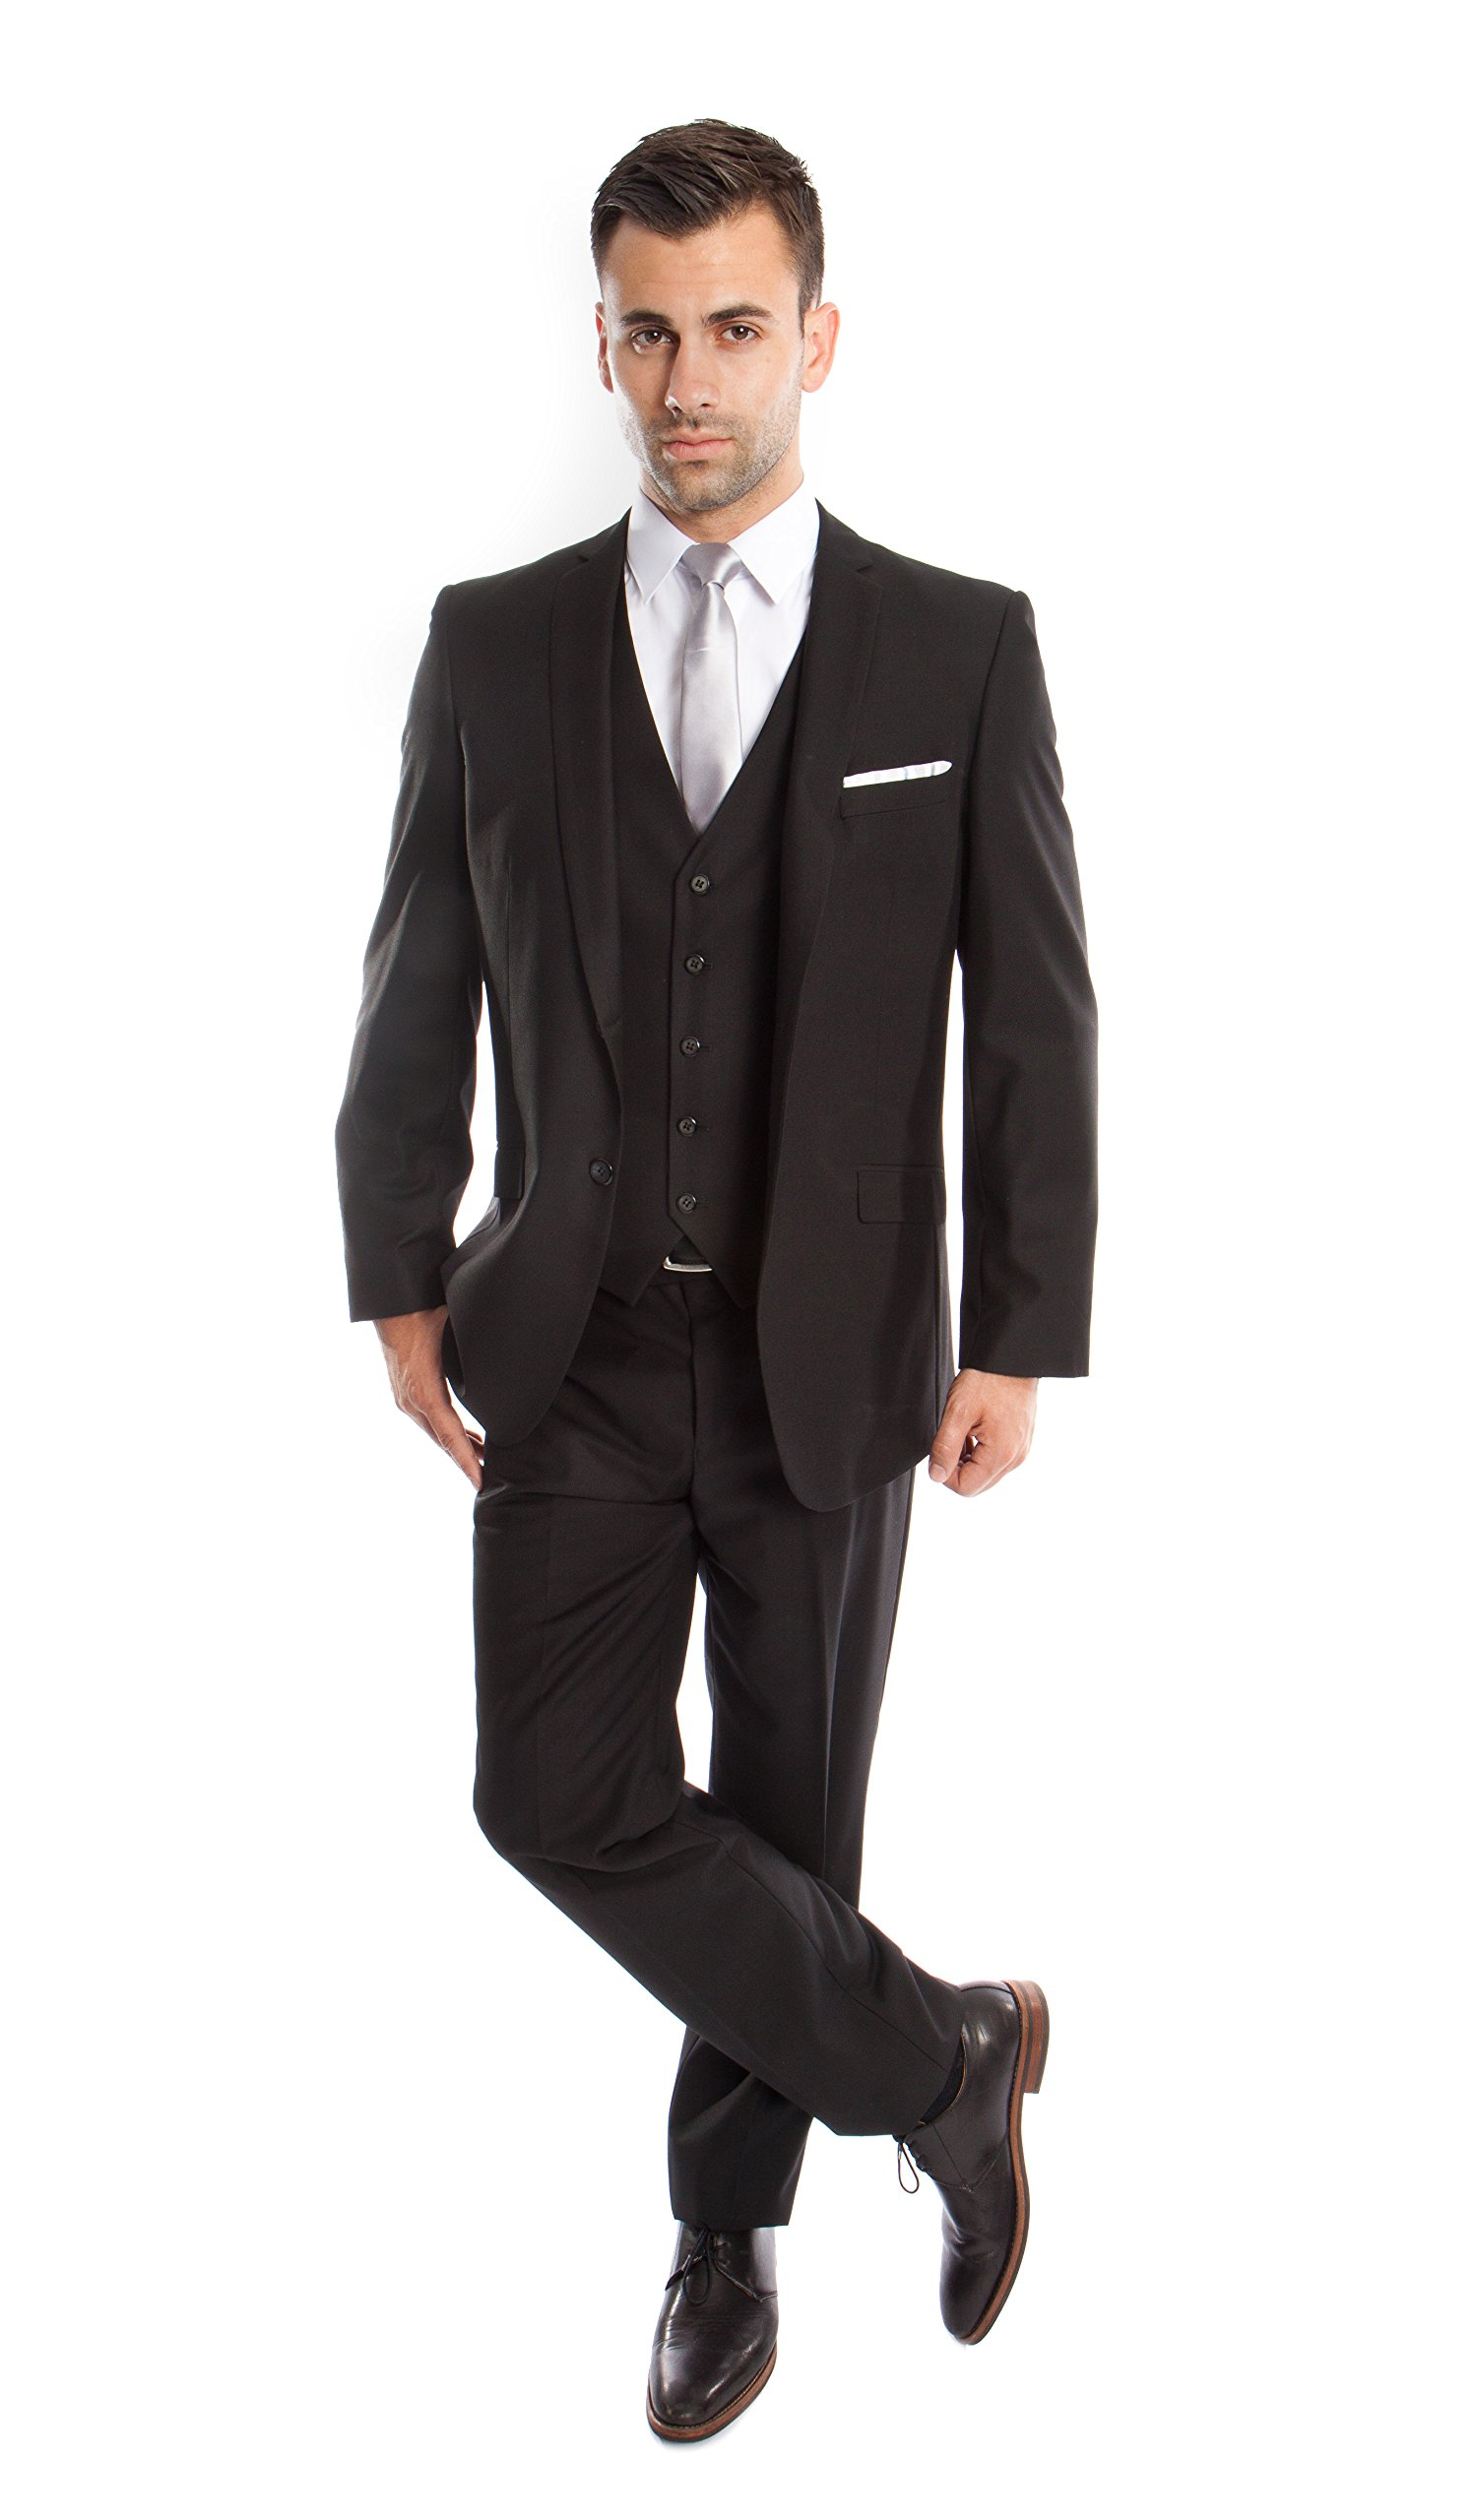 TAZIO Mens Luxurious Solid Tuxedo Suits 3 Piece Suit Set (50L, Black)